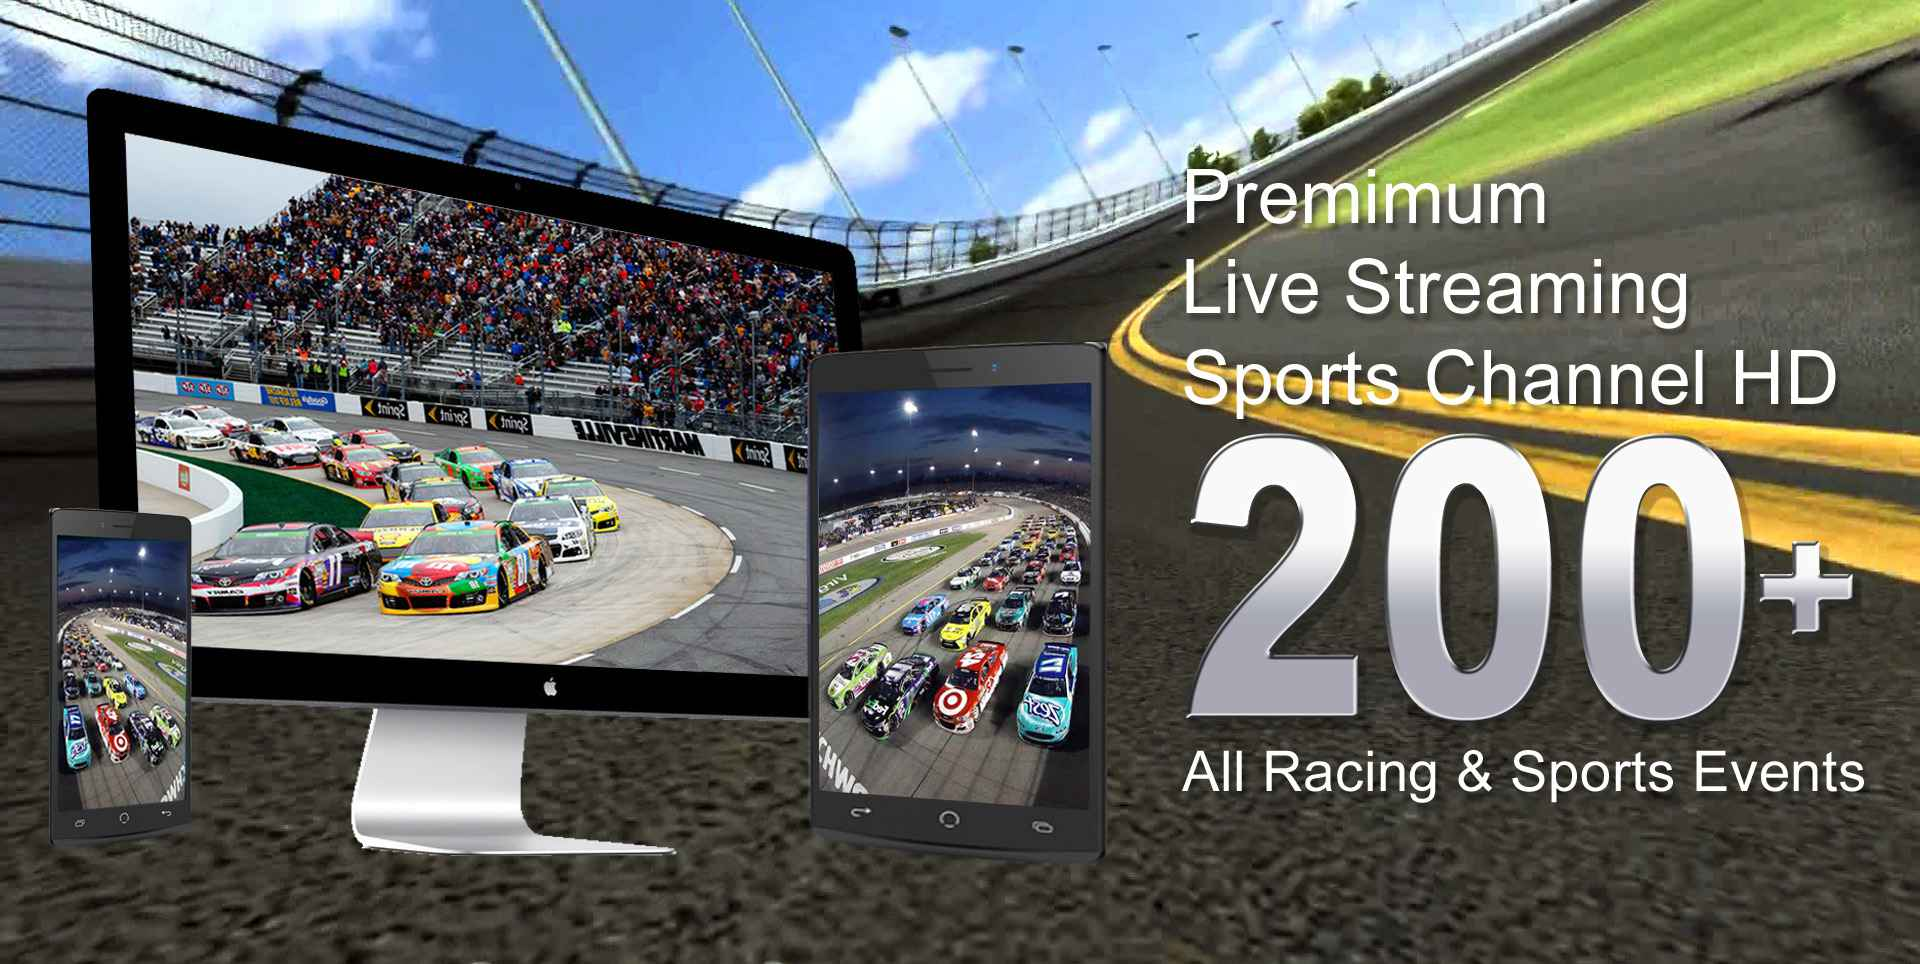 NASCAR Sprint Cup Series at Richmond